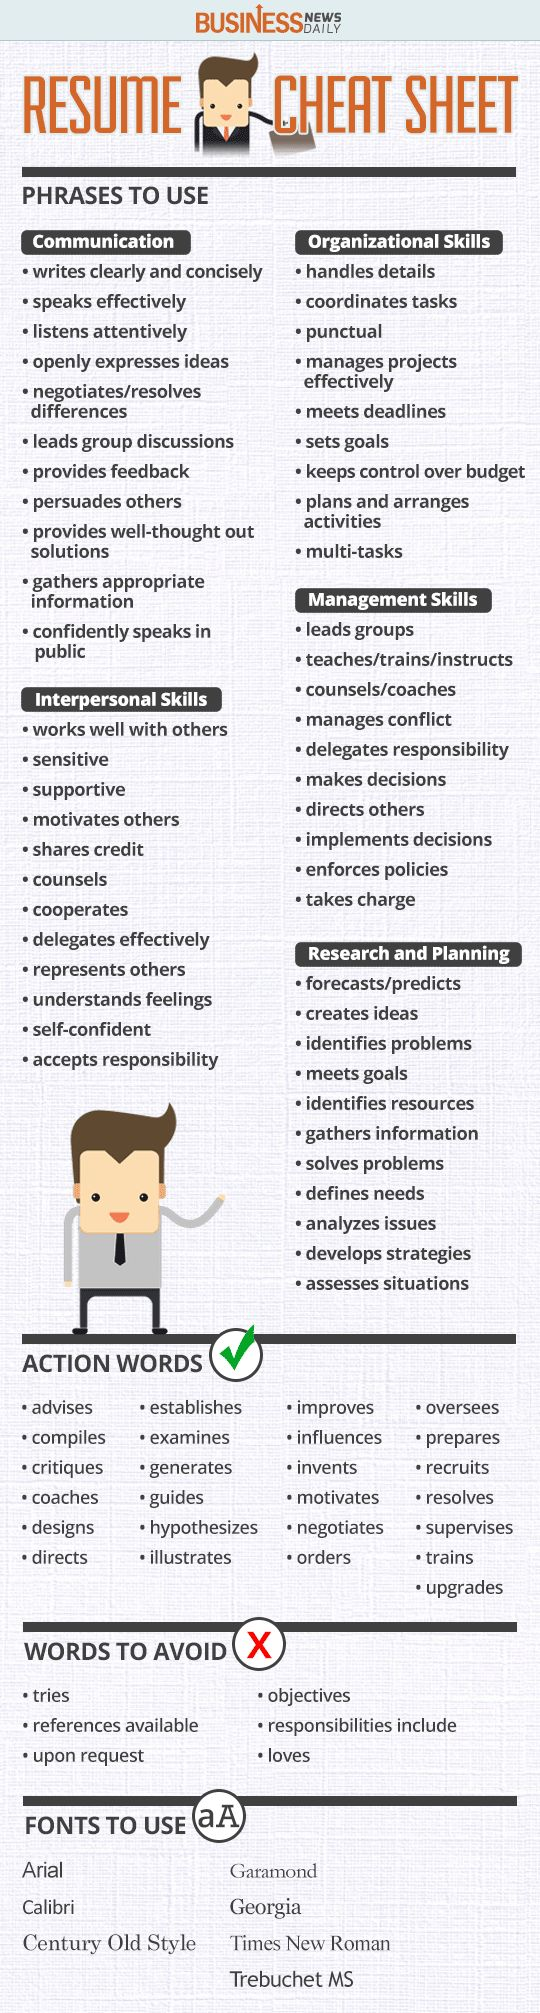 Opposenewapstandardsus  Fascinating  Ideas About Resume On Pinterest  Cv Format Resume Cv And  With Exciting Resume Cheat Sheet Infographic Andrews Almost Done With A Complete Unit On Employment Which With Attractive How To Write A Cover Letter And Resume Also Resume Building Software In Addition List Skills On Resume And Need A Resume As Well As Sales Representative Job Description Resume Additionally College Application Resume Format From Pinterestcom With Opposenewapstandardsus  Exciting  Ideas About Resume On Pinterest  Cv Format Resume Cv And  With Attractive Resume Cheat Sheet Infographic Andrews Almost Done With A Complete Unit On Employment Which And Fascinating How To Write A Cover Letter And Resume Also Resume Building Software In Addition List Skills On Resume From Pinterestcom